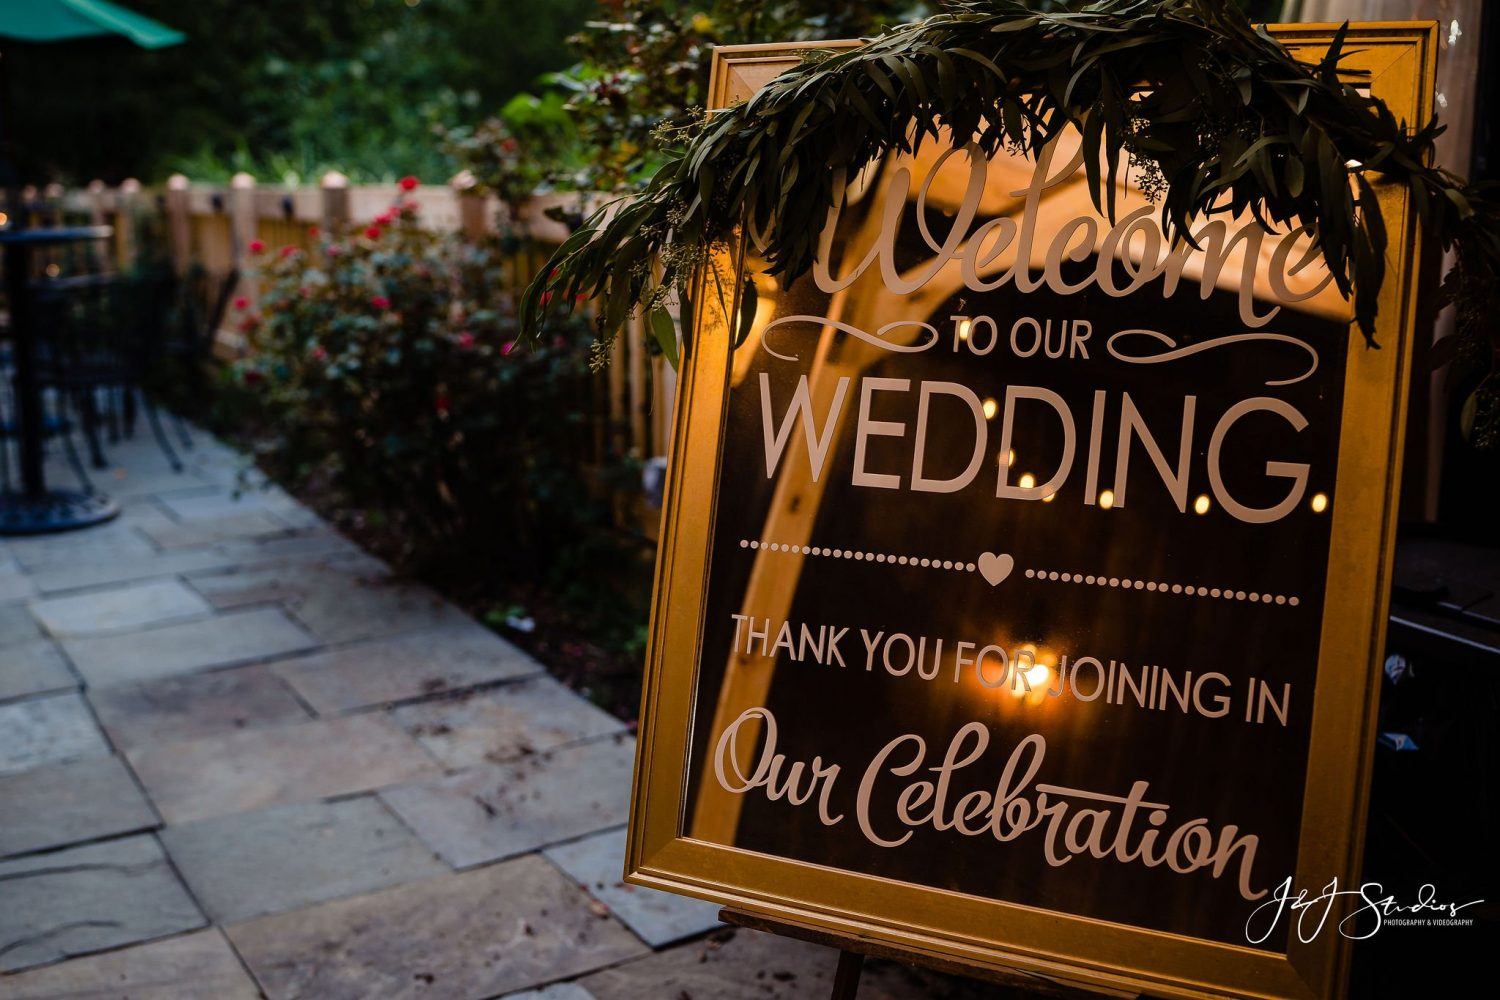 Welcome to our wedding sign celebrate